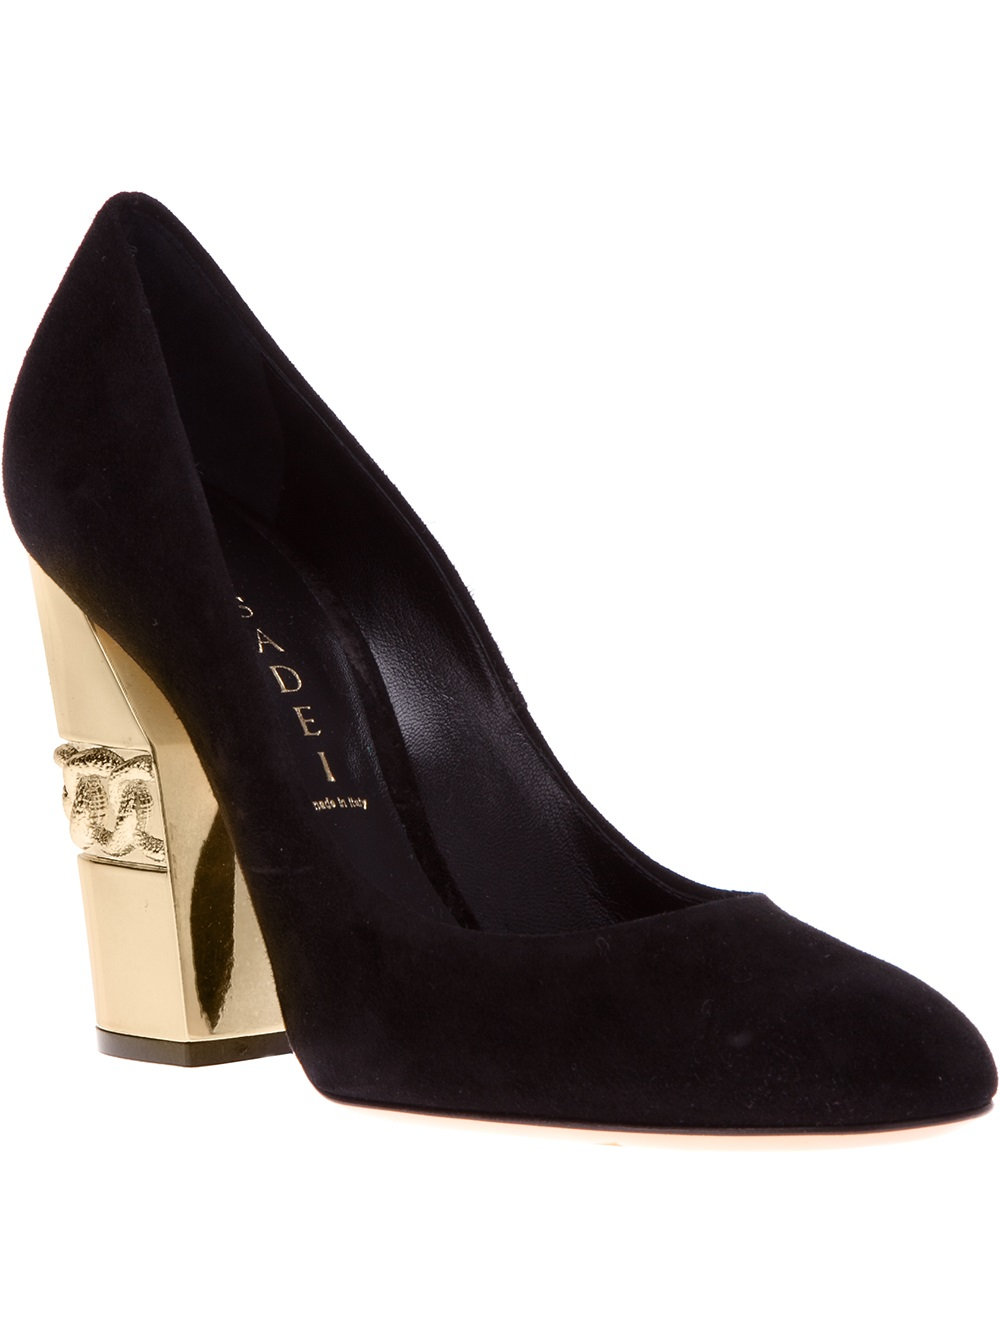 Casadei Chunky Heel Pump in Black | Lyst